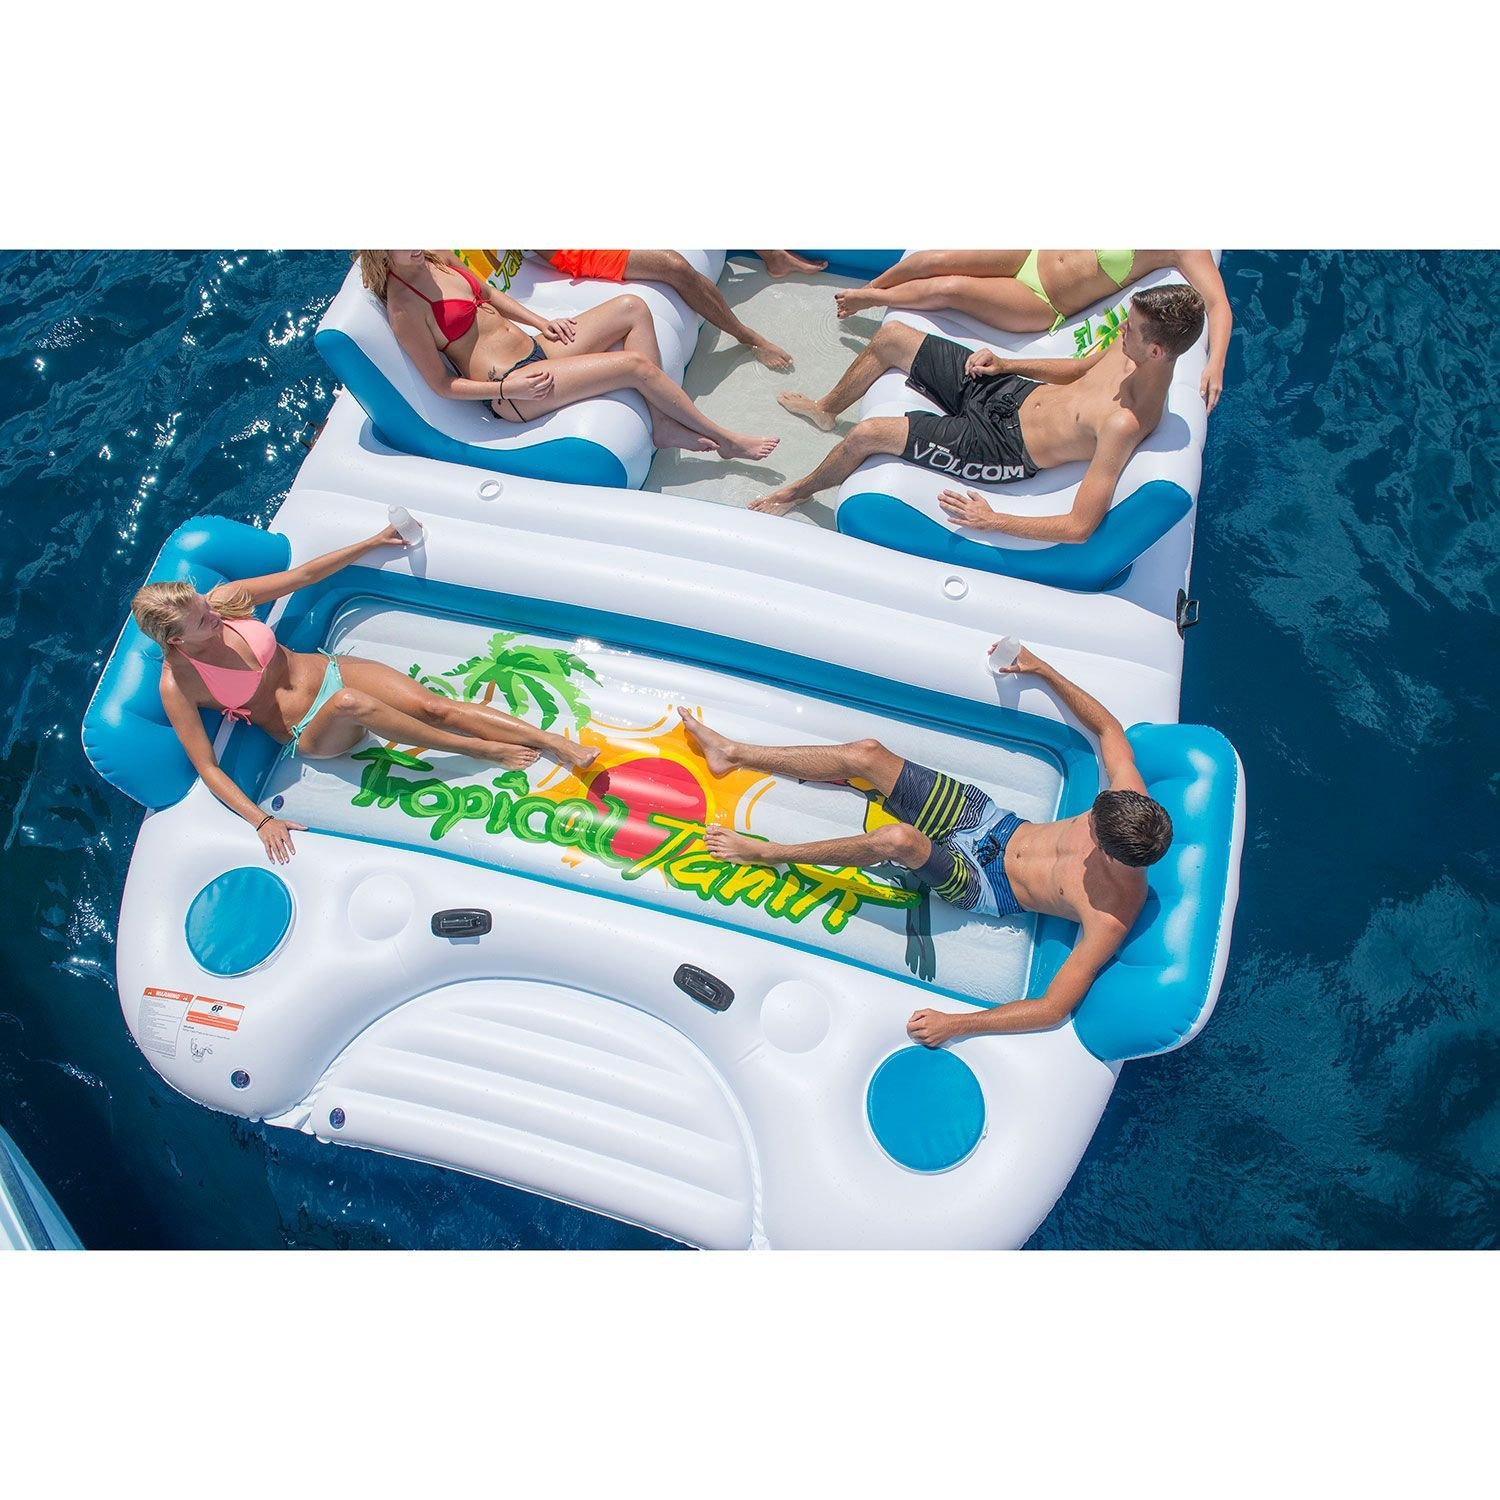 Bestway Coolerz X5 Seven Person Floating Canopy Island Seat -